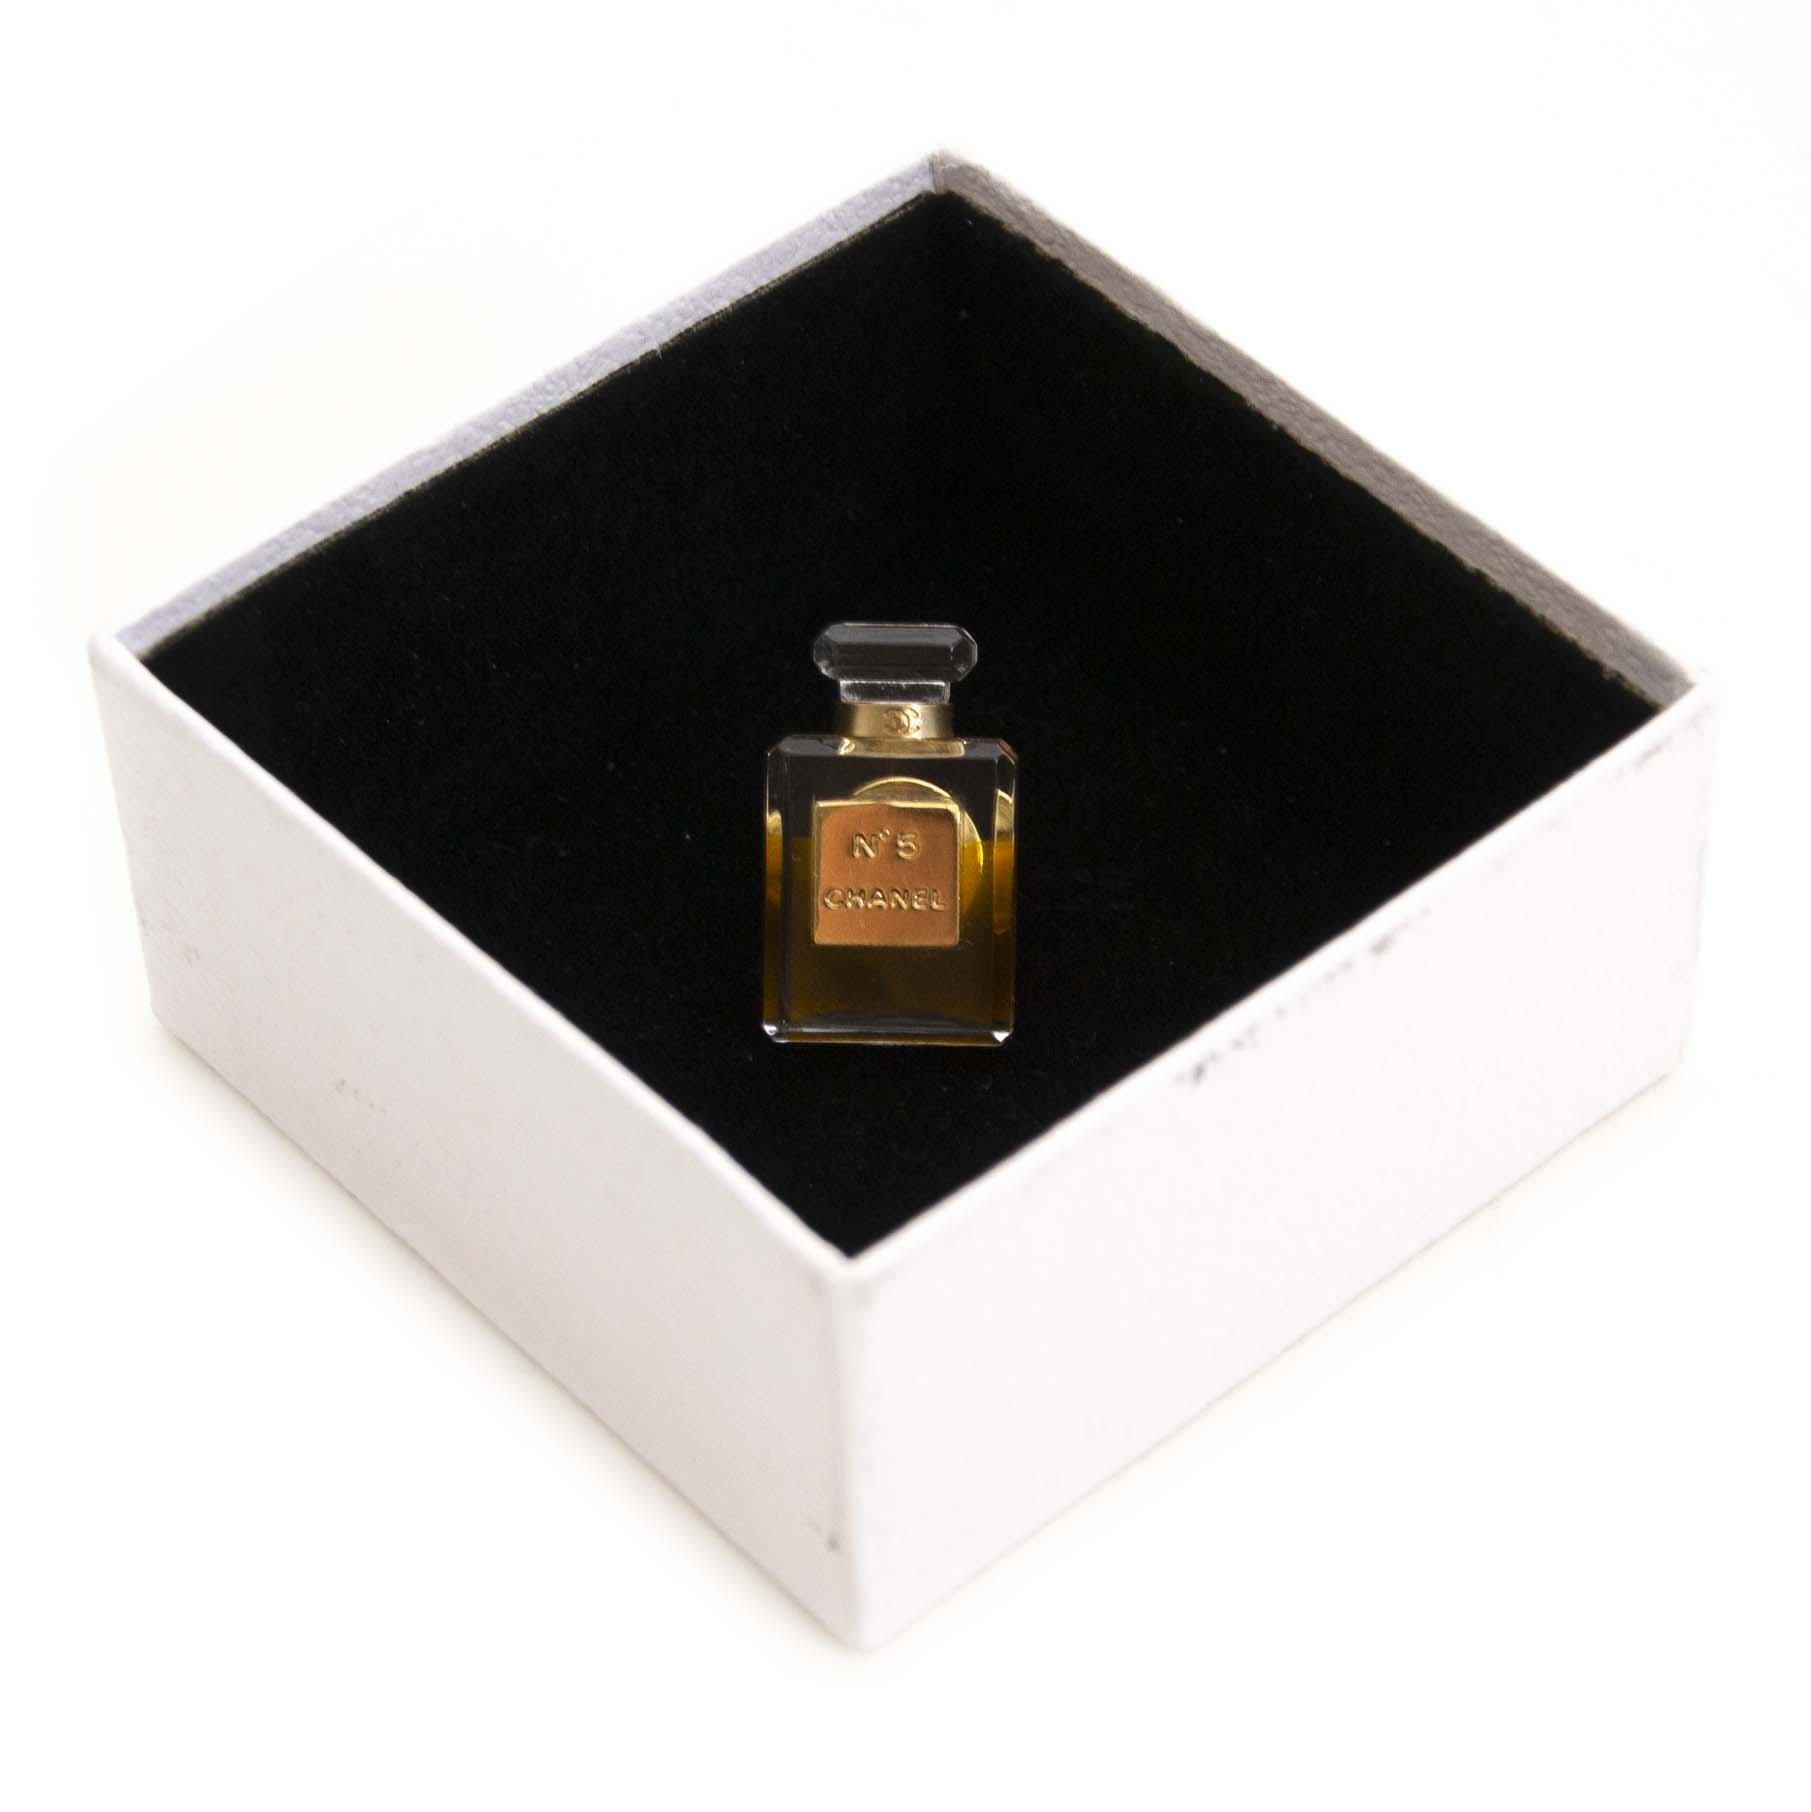 Buy authentic second hand vintage Chanel No. 5 Perfume Bottle  at online webshop LabelLOV. Safe and secure shopping. Koop authentieke tweedehands vintage Chanel No. 5 Perfume Bottle Brooc bij online webshop LabelLOV.